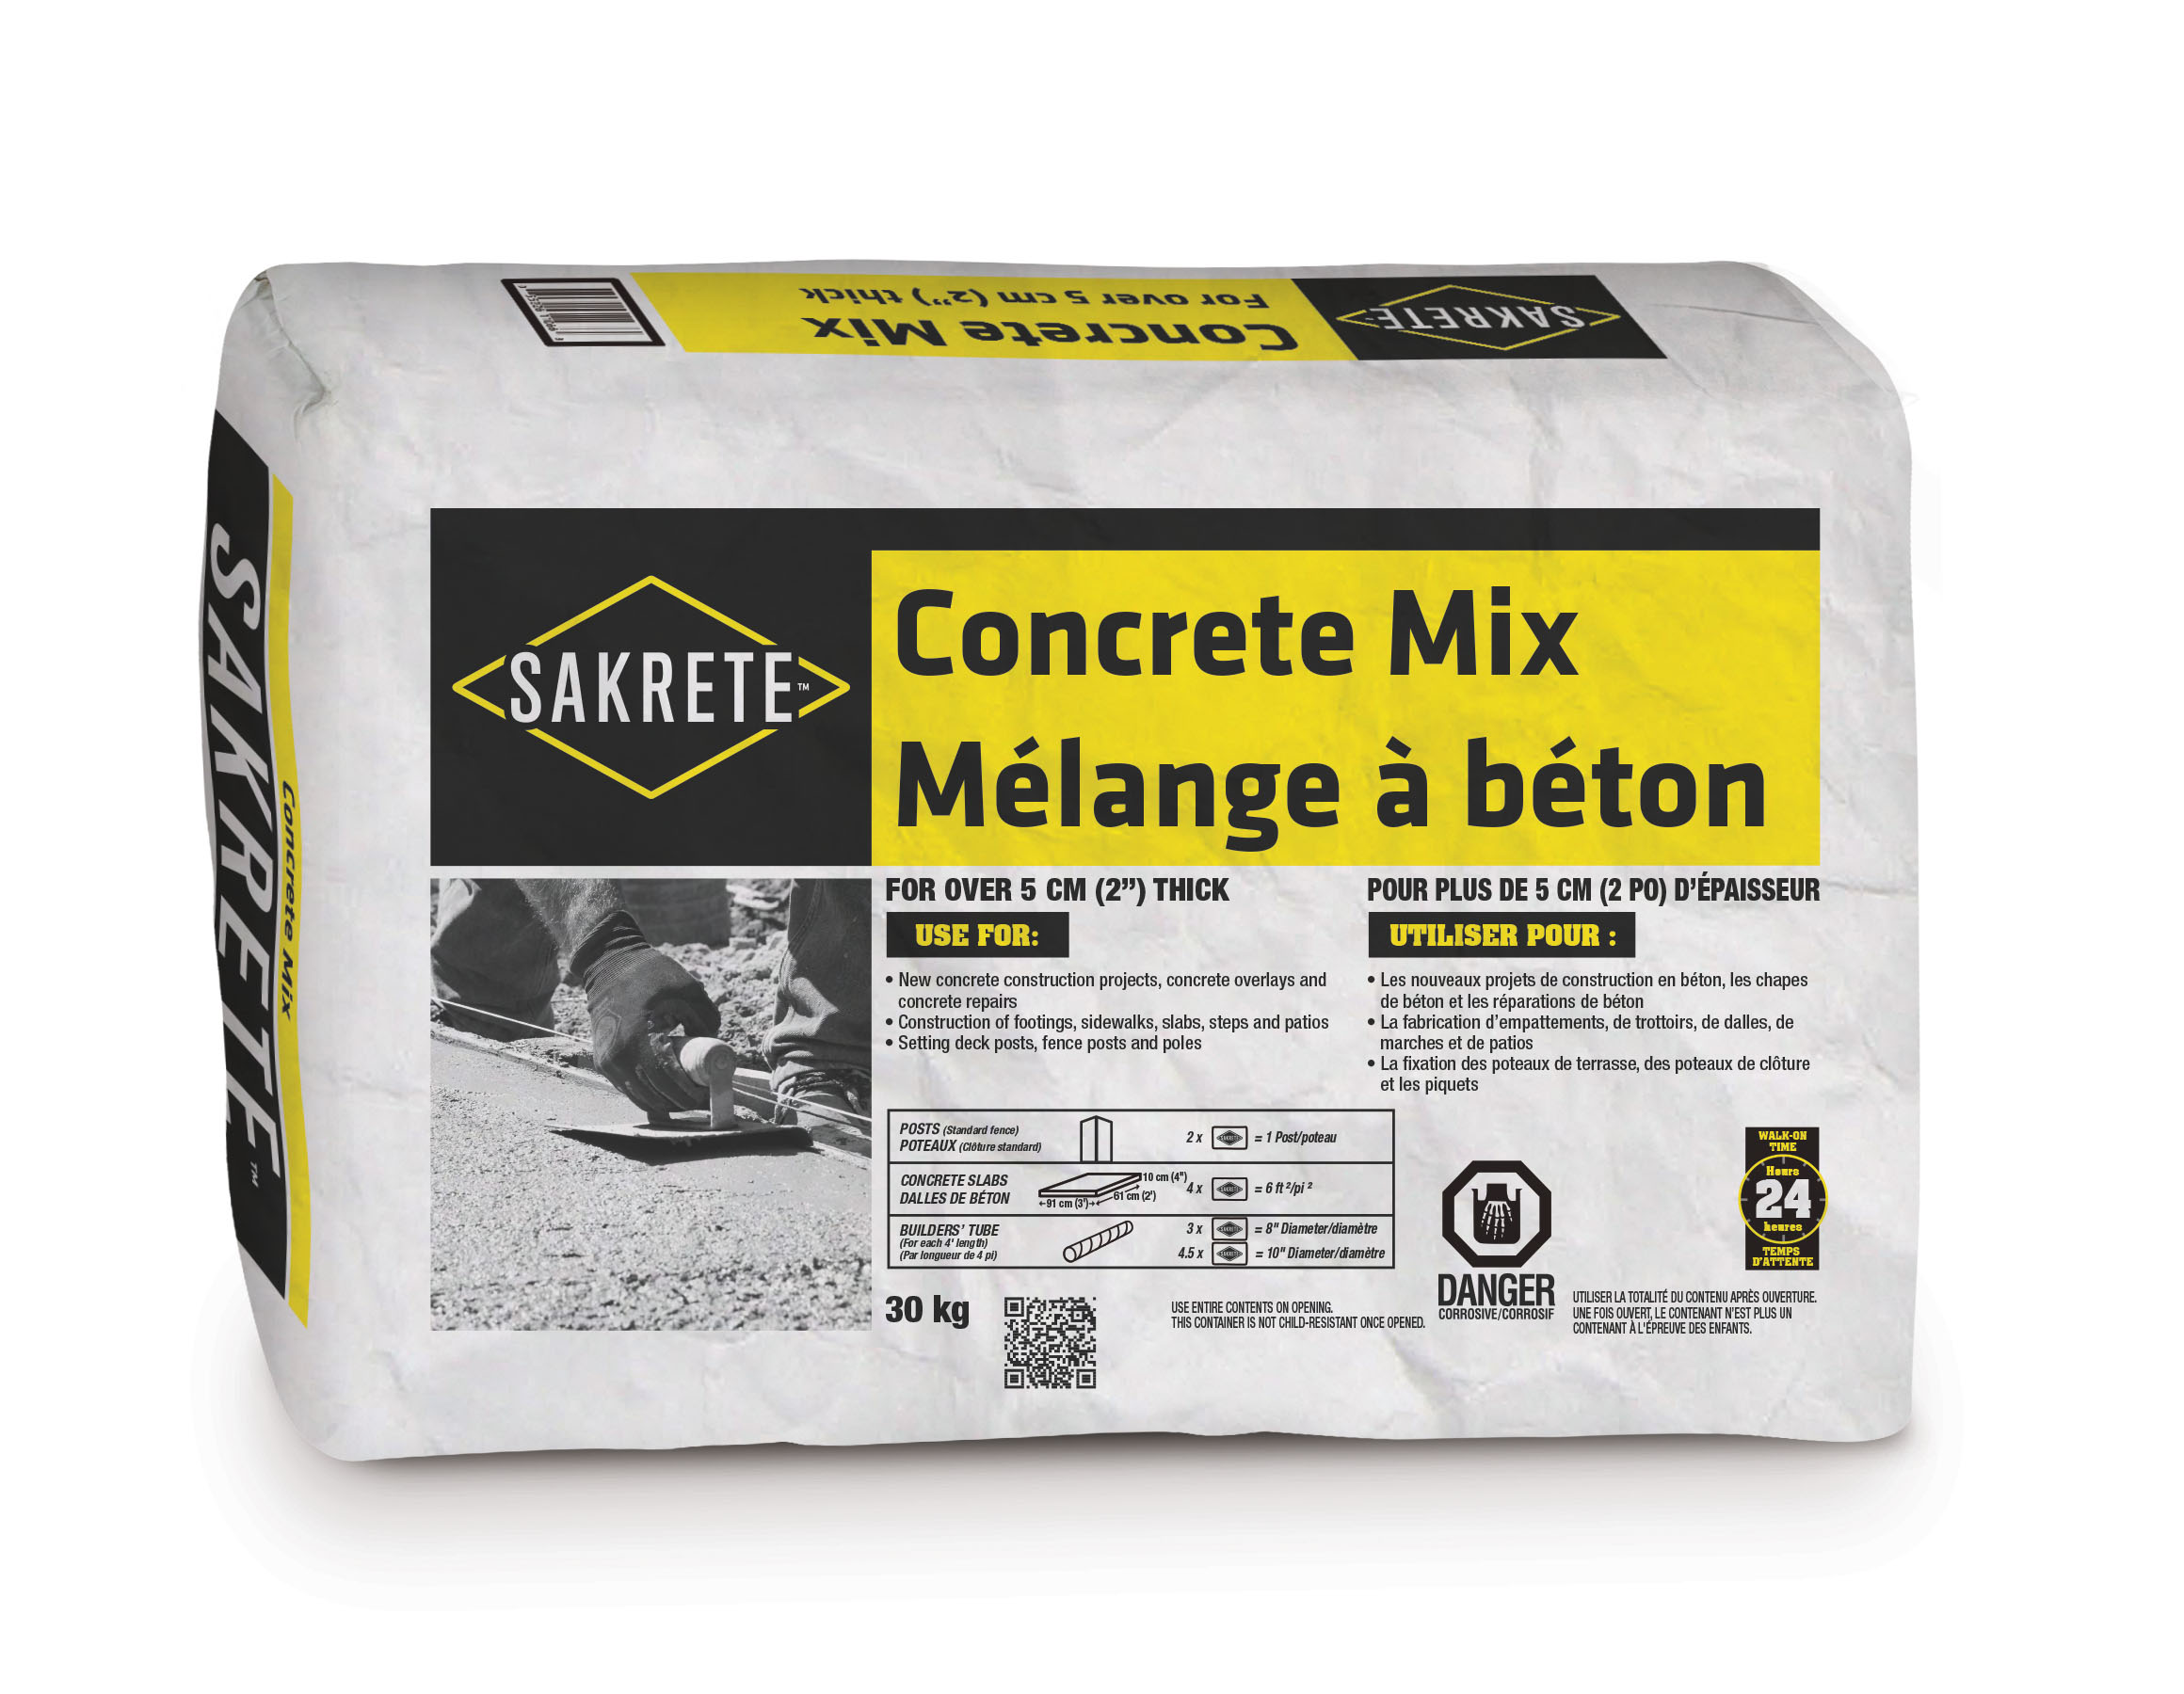 Sakrete Concrete Mix 30 Kg Bien Fait Ici Well Made Here